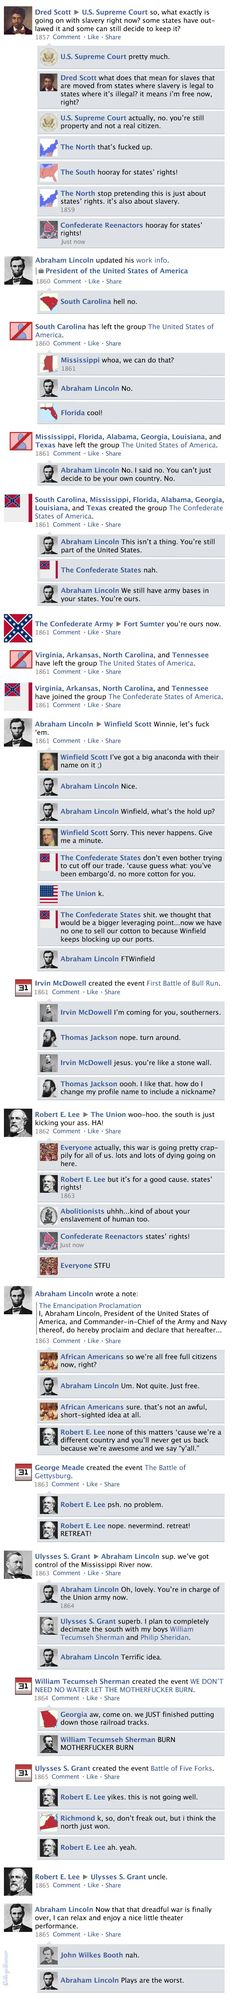 "Facebook News Feed History of the Civil War "" No. I said no. You can't just decide to be your own country. No"" - Abraham Lincoln lol"